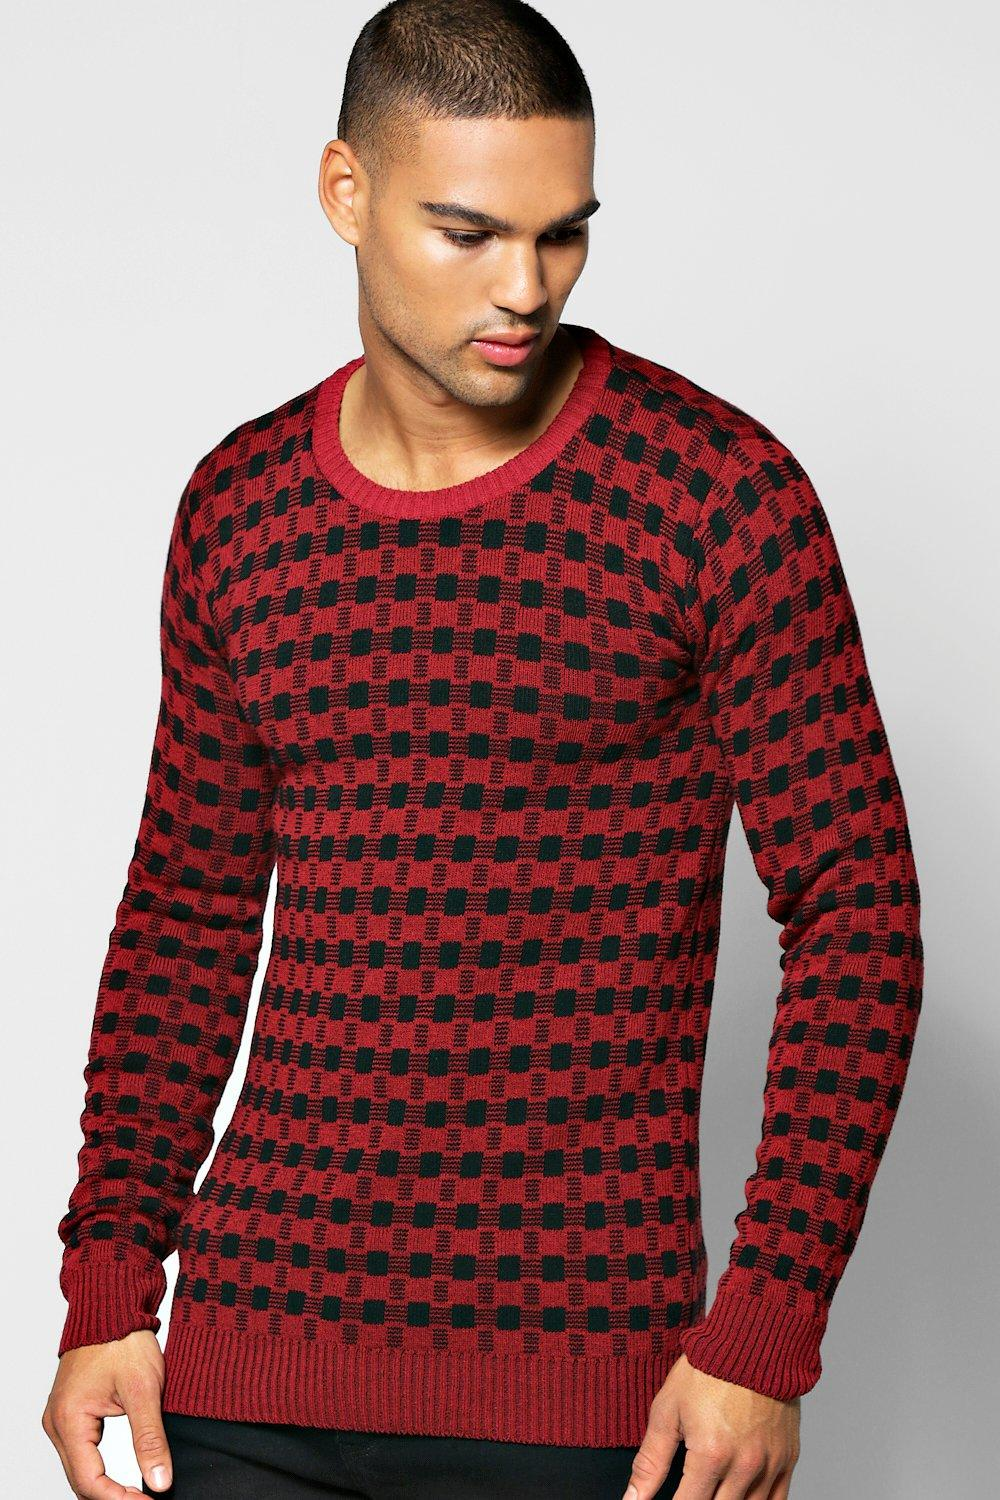 Two Colour Knitted Sweater